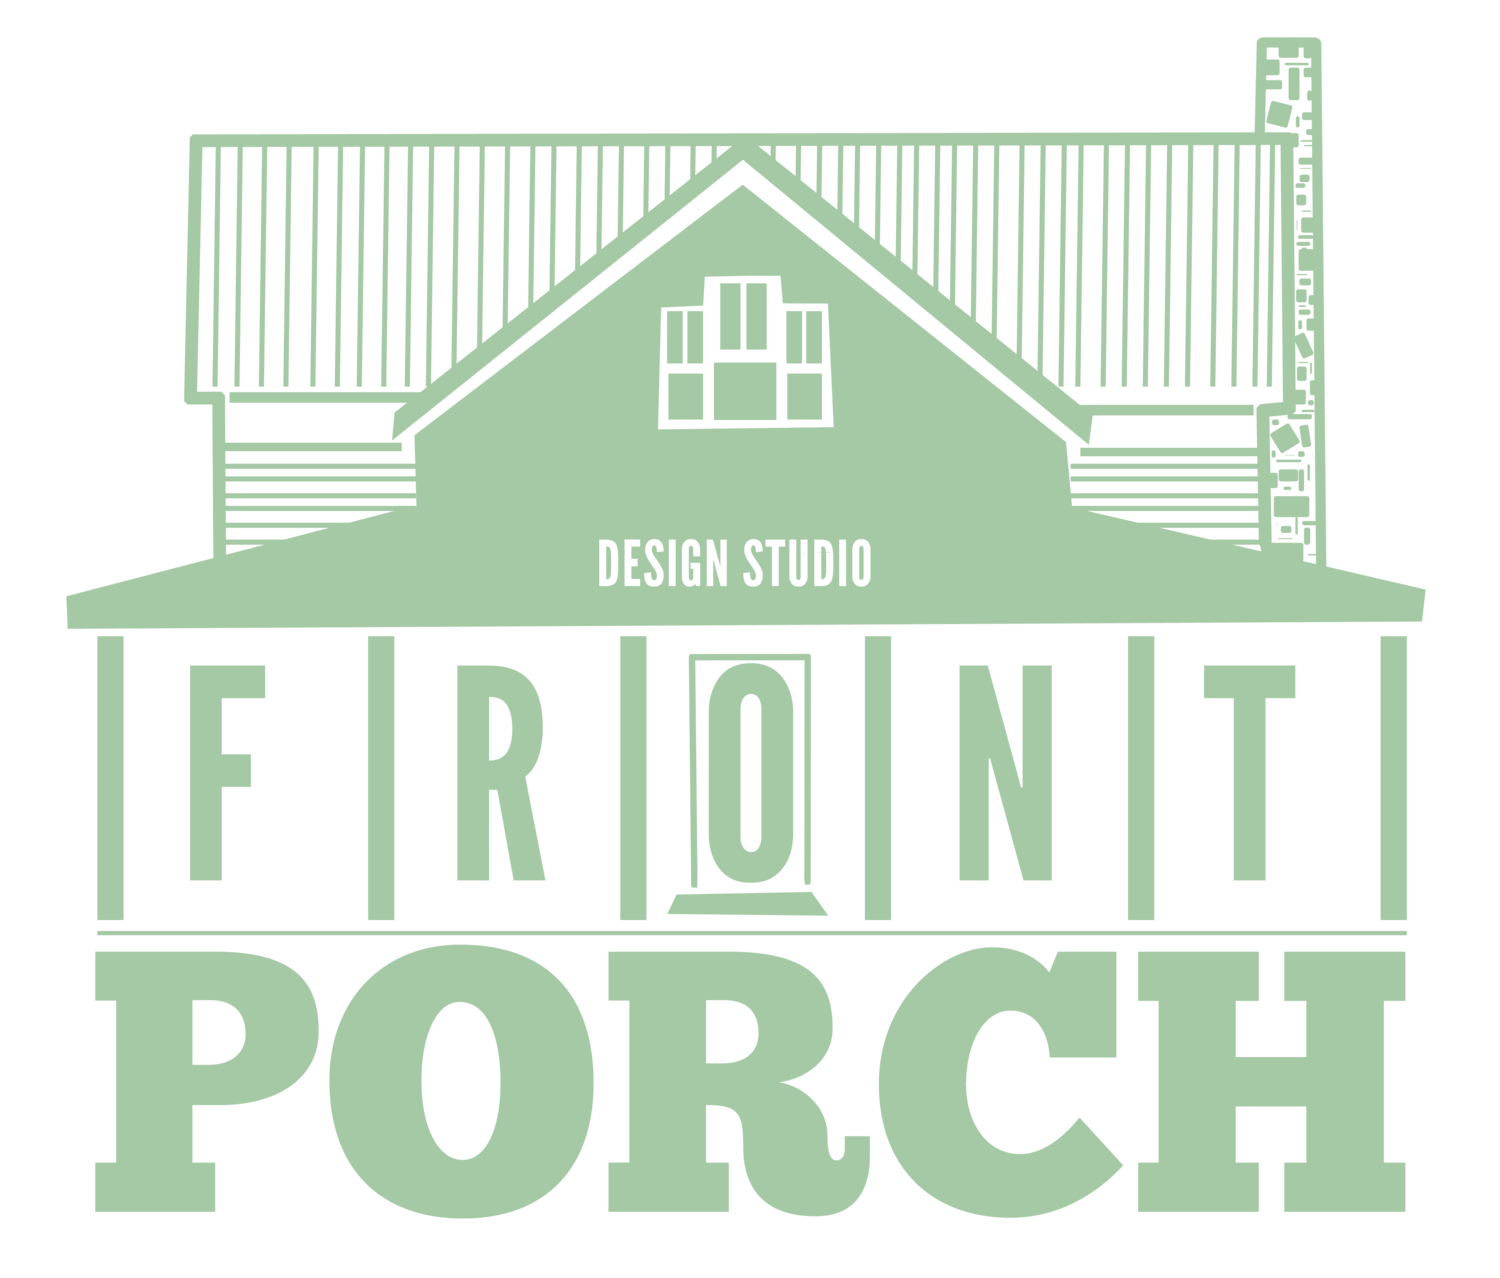 Front Porch Design Studio